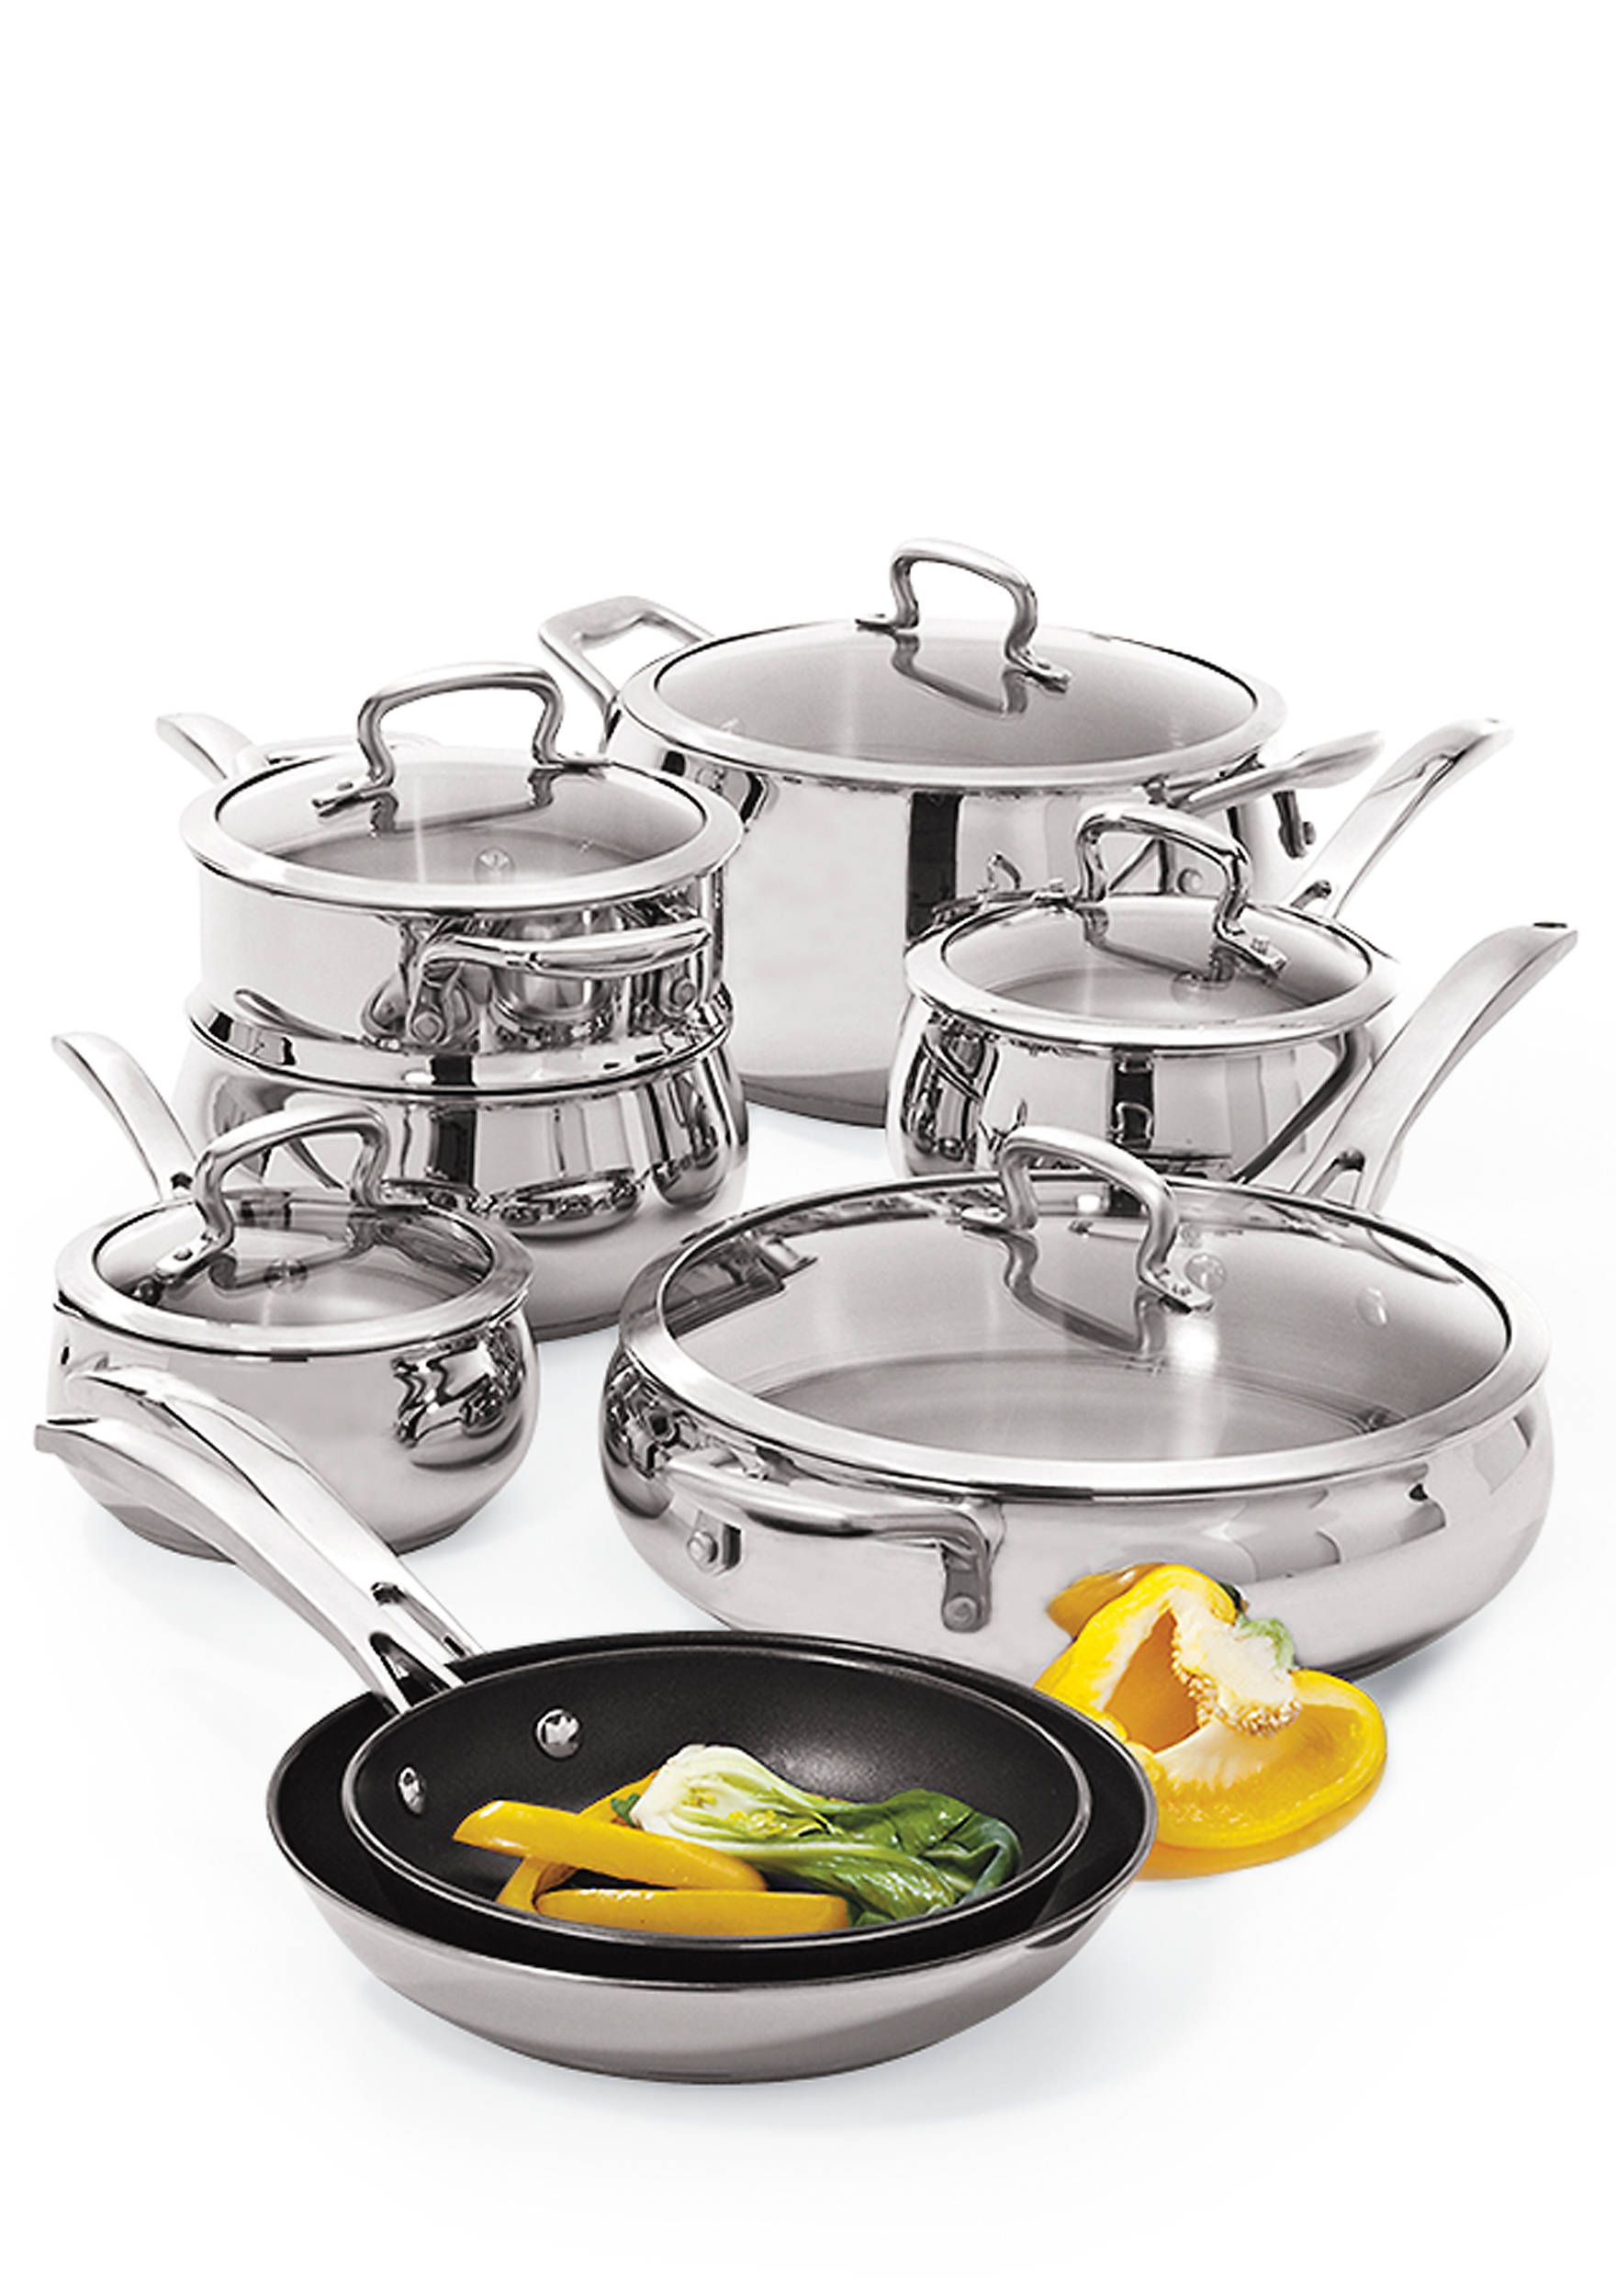 Biltmore Belly Shaped Stainless 13 Piece Cookware Set Cookware Set Country Kitchen Decor Stainless Steel Cookware